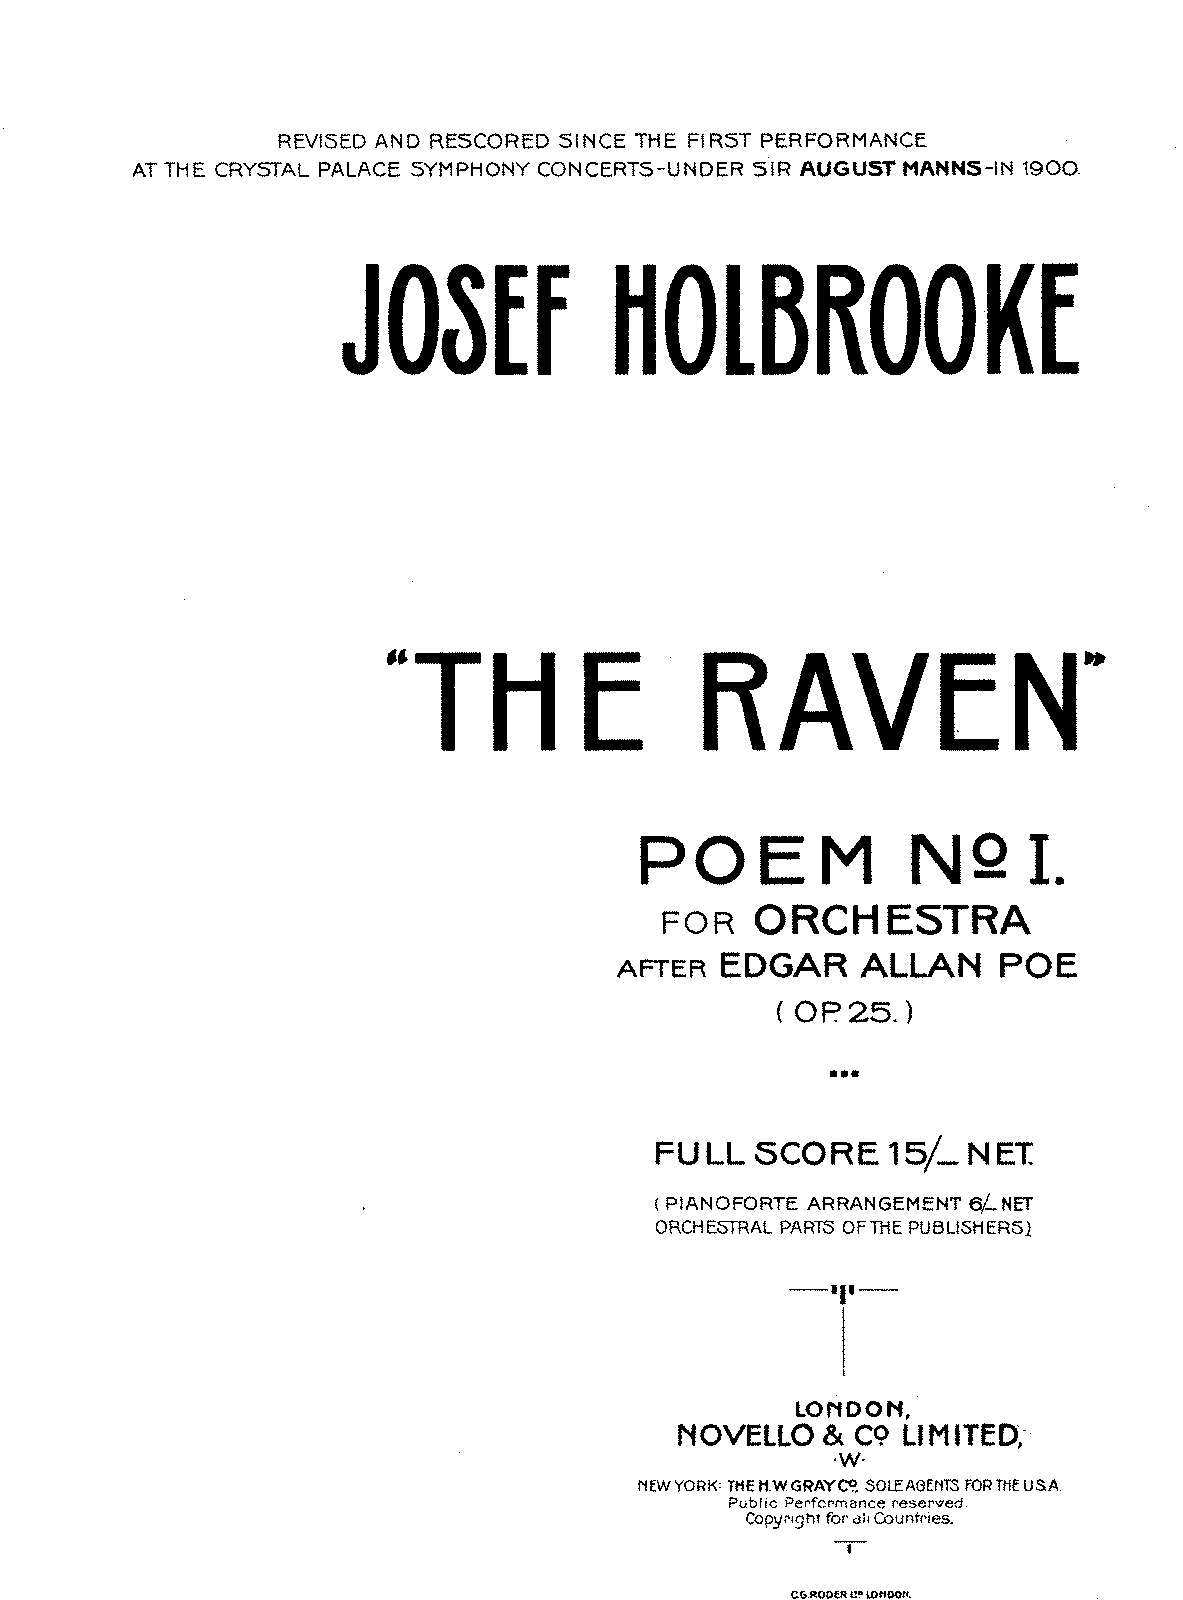 PMLP60593-Holbrooke - Poem No 1 'The Raven' for Orchestra Op 25.pdf